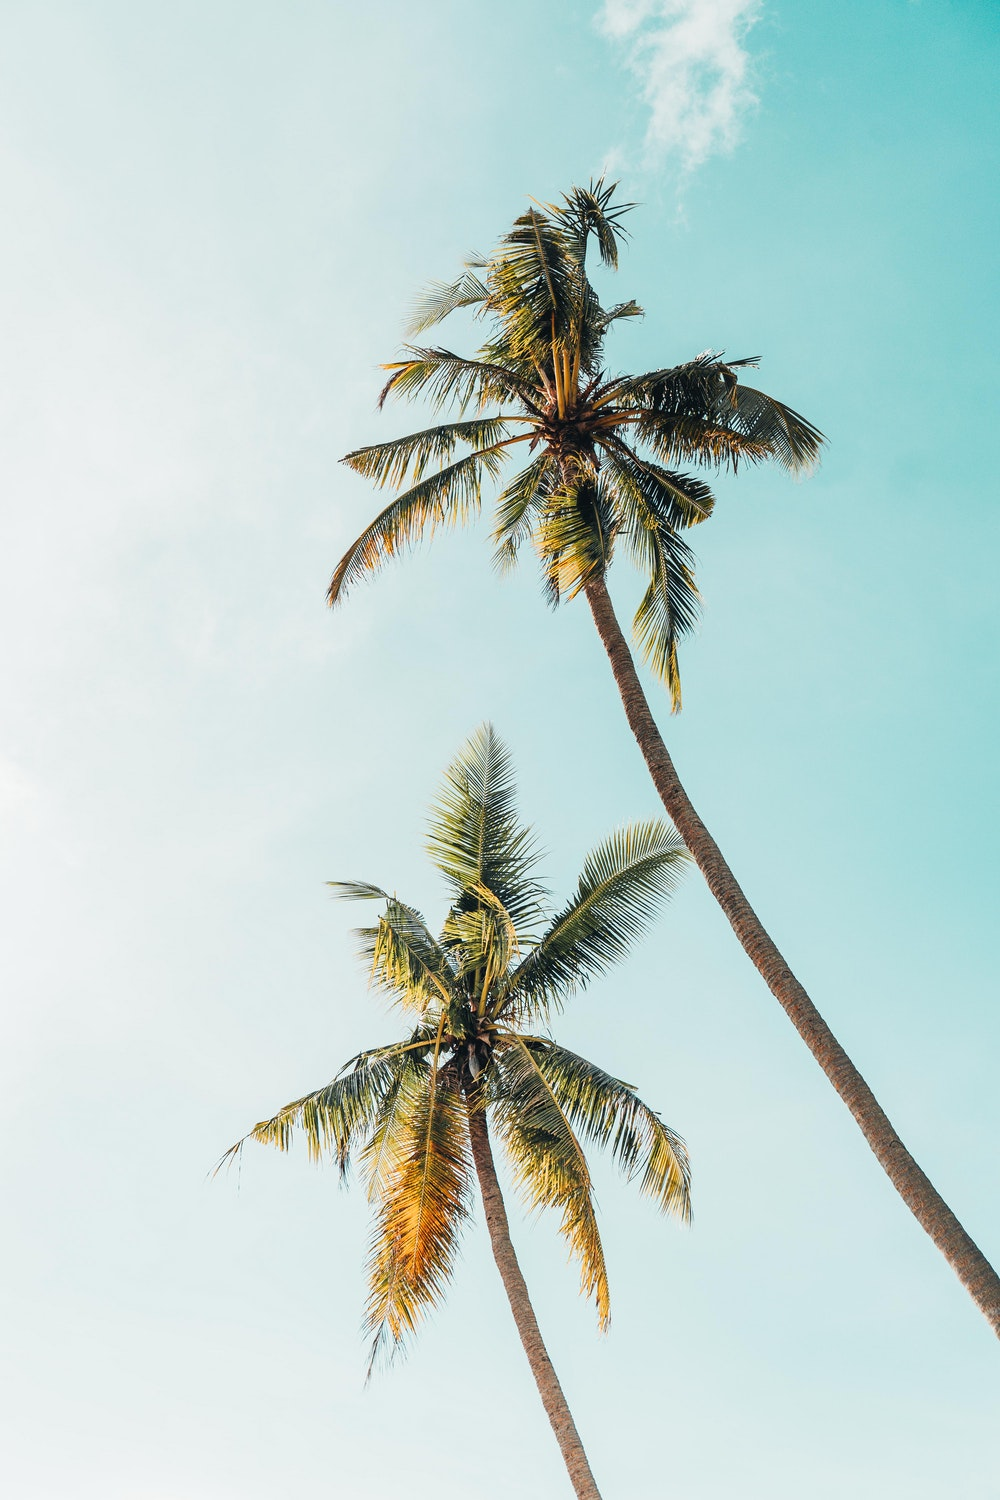 Palm Tree Wallpaper - Palm Tree Phone Background , HD Wallpaper & Backgrounds